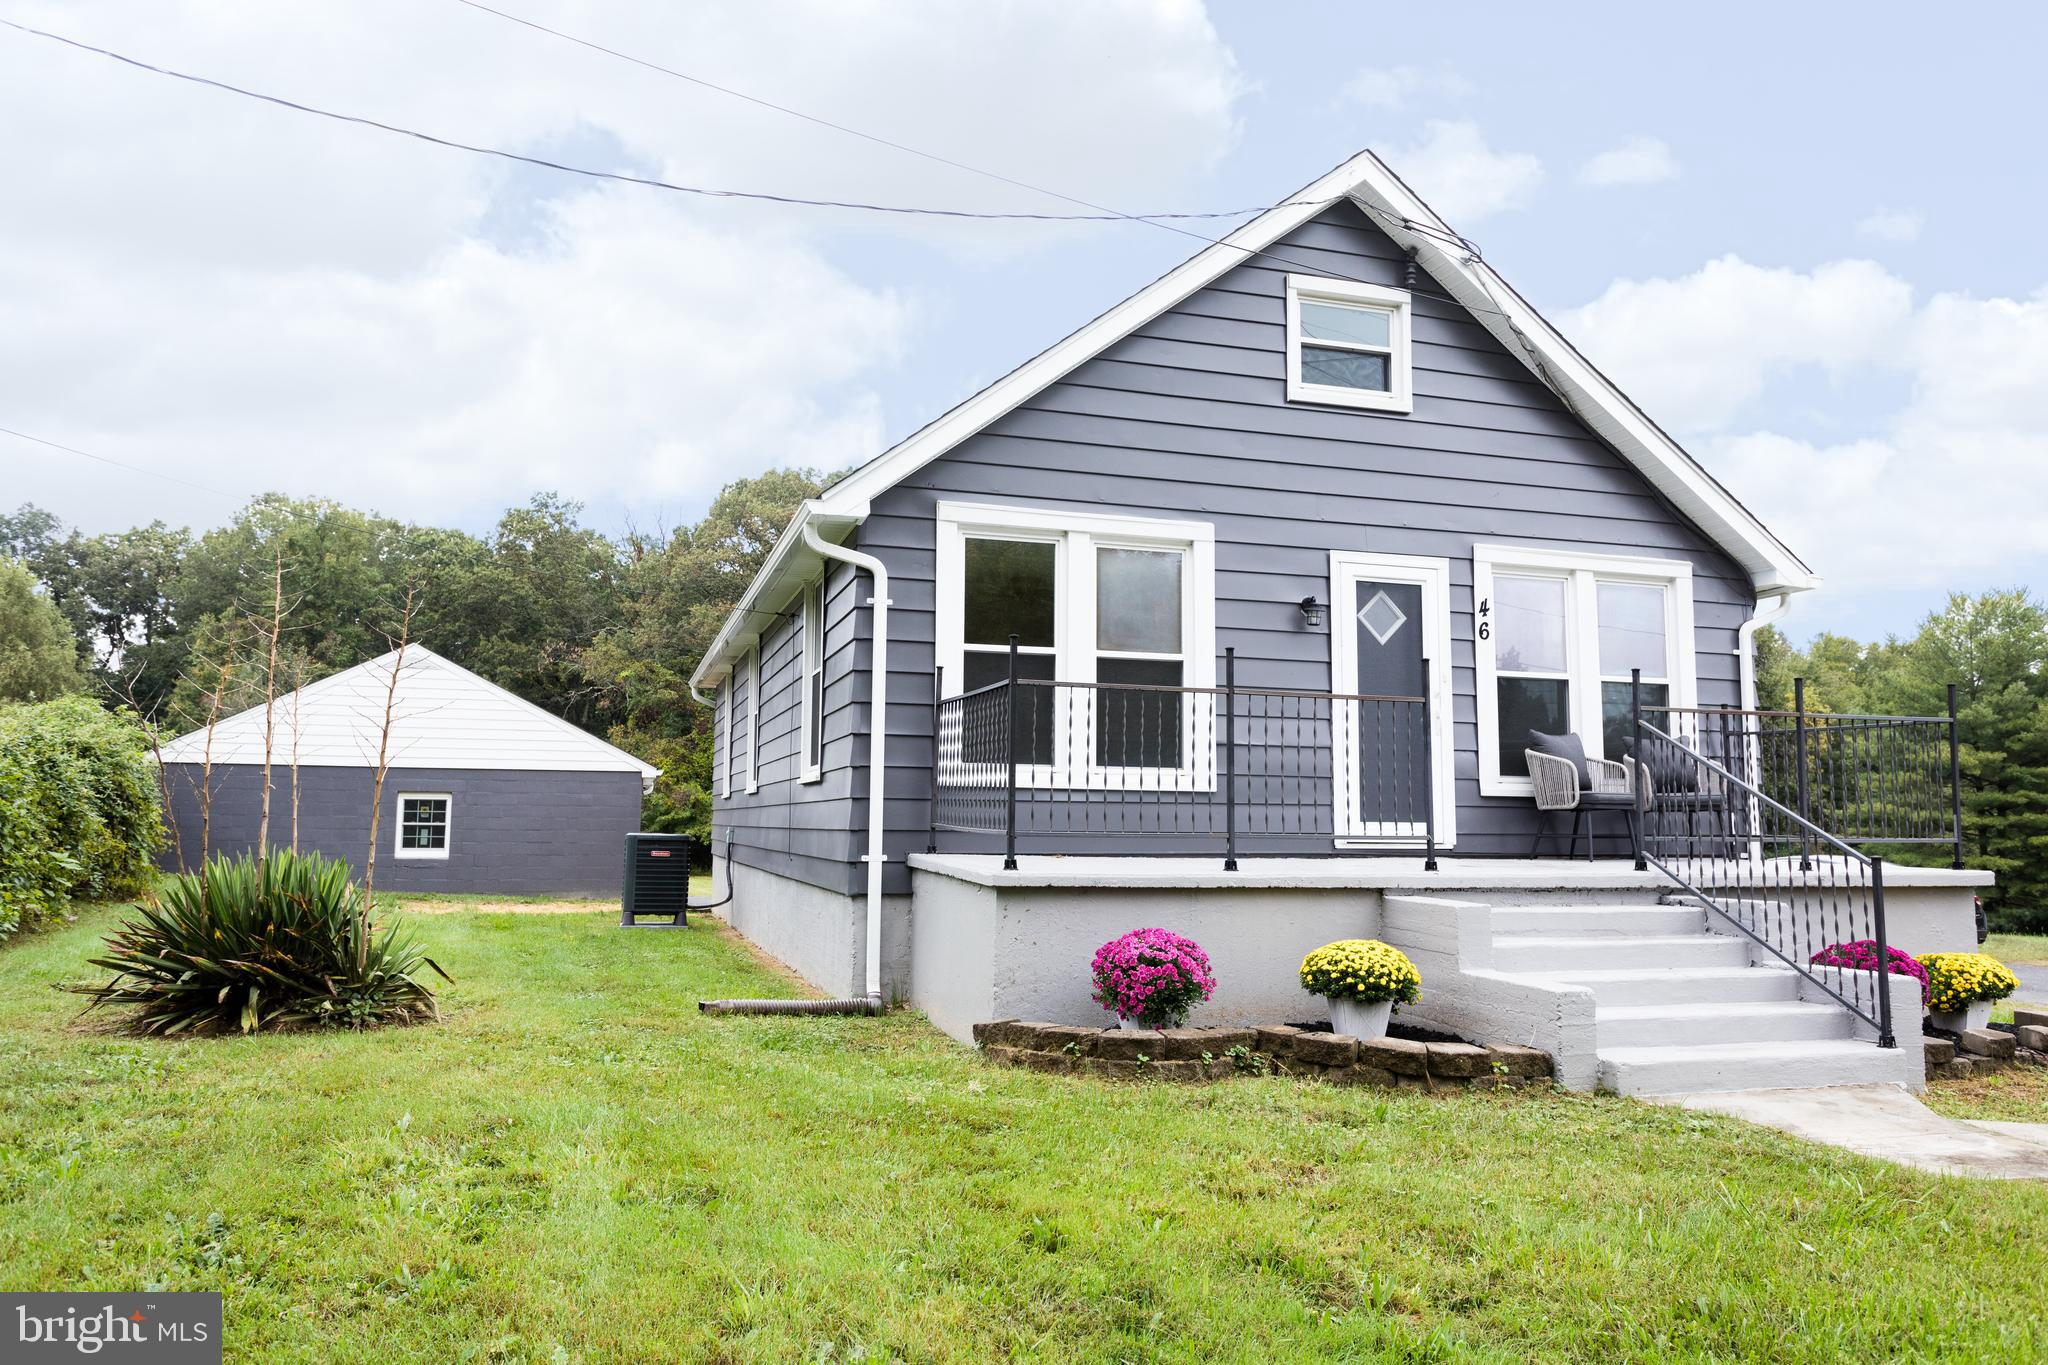 100% Financing available! Welcome home to this fully renovated home with 2-car detached garage! The